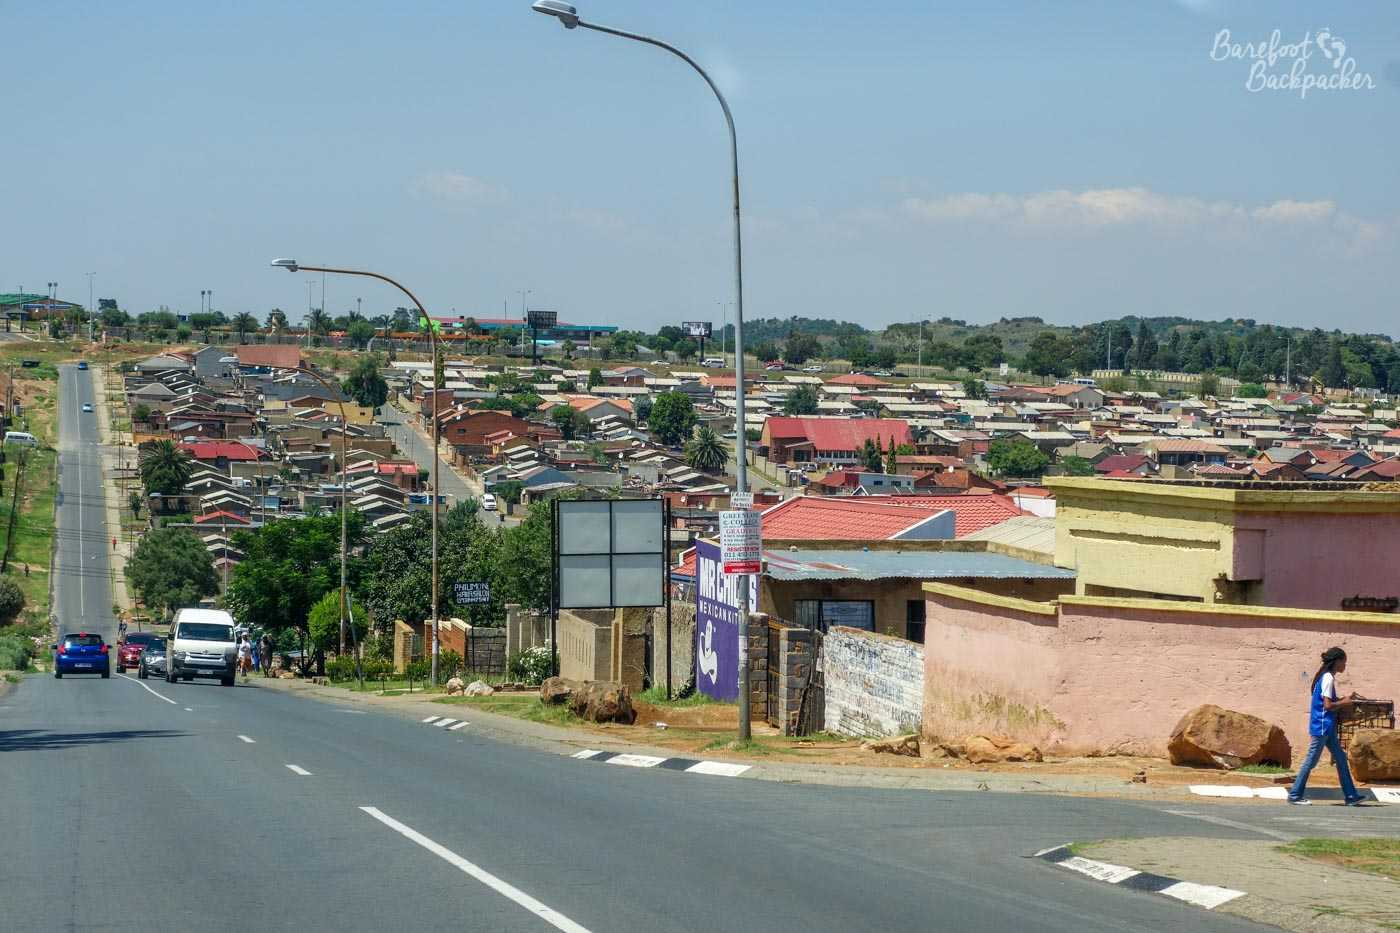 Overview of part of Soweto, looking out over some of the houses from a street in the outskirts